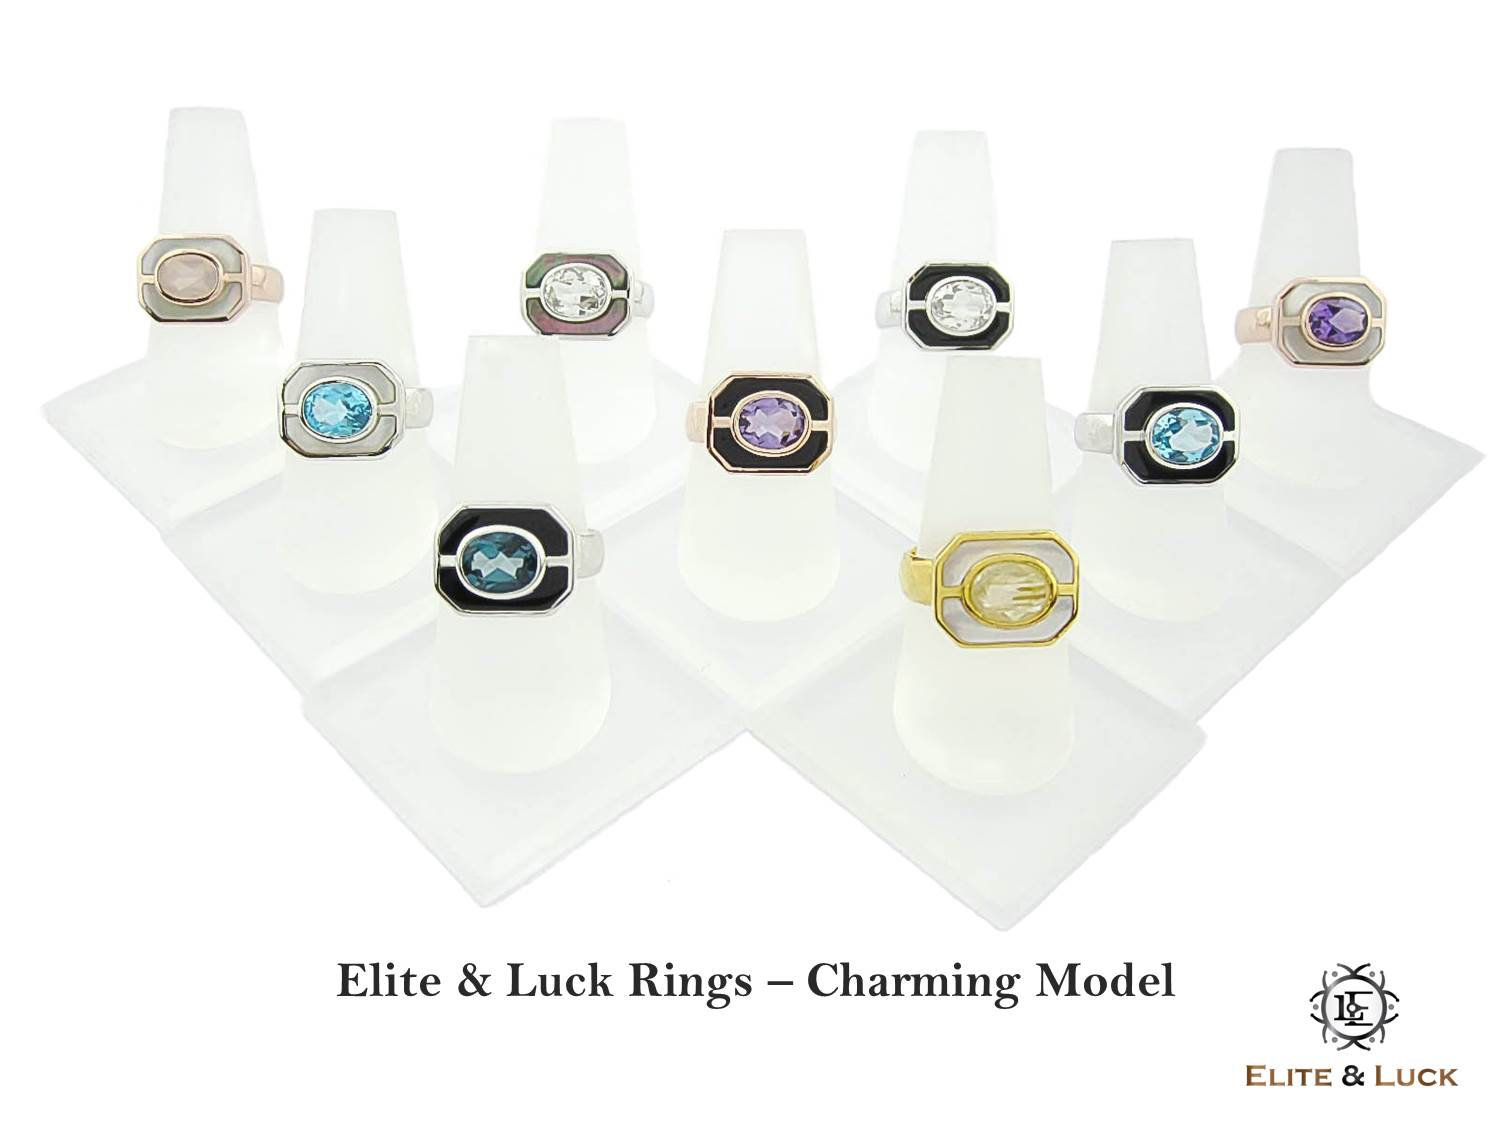 Elite & Luck Gemstone Rings for Men, Charming Model